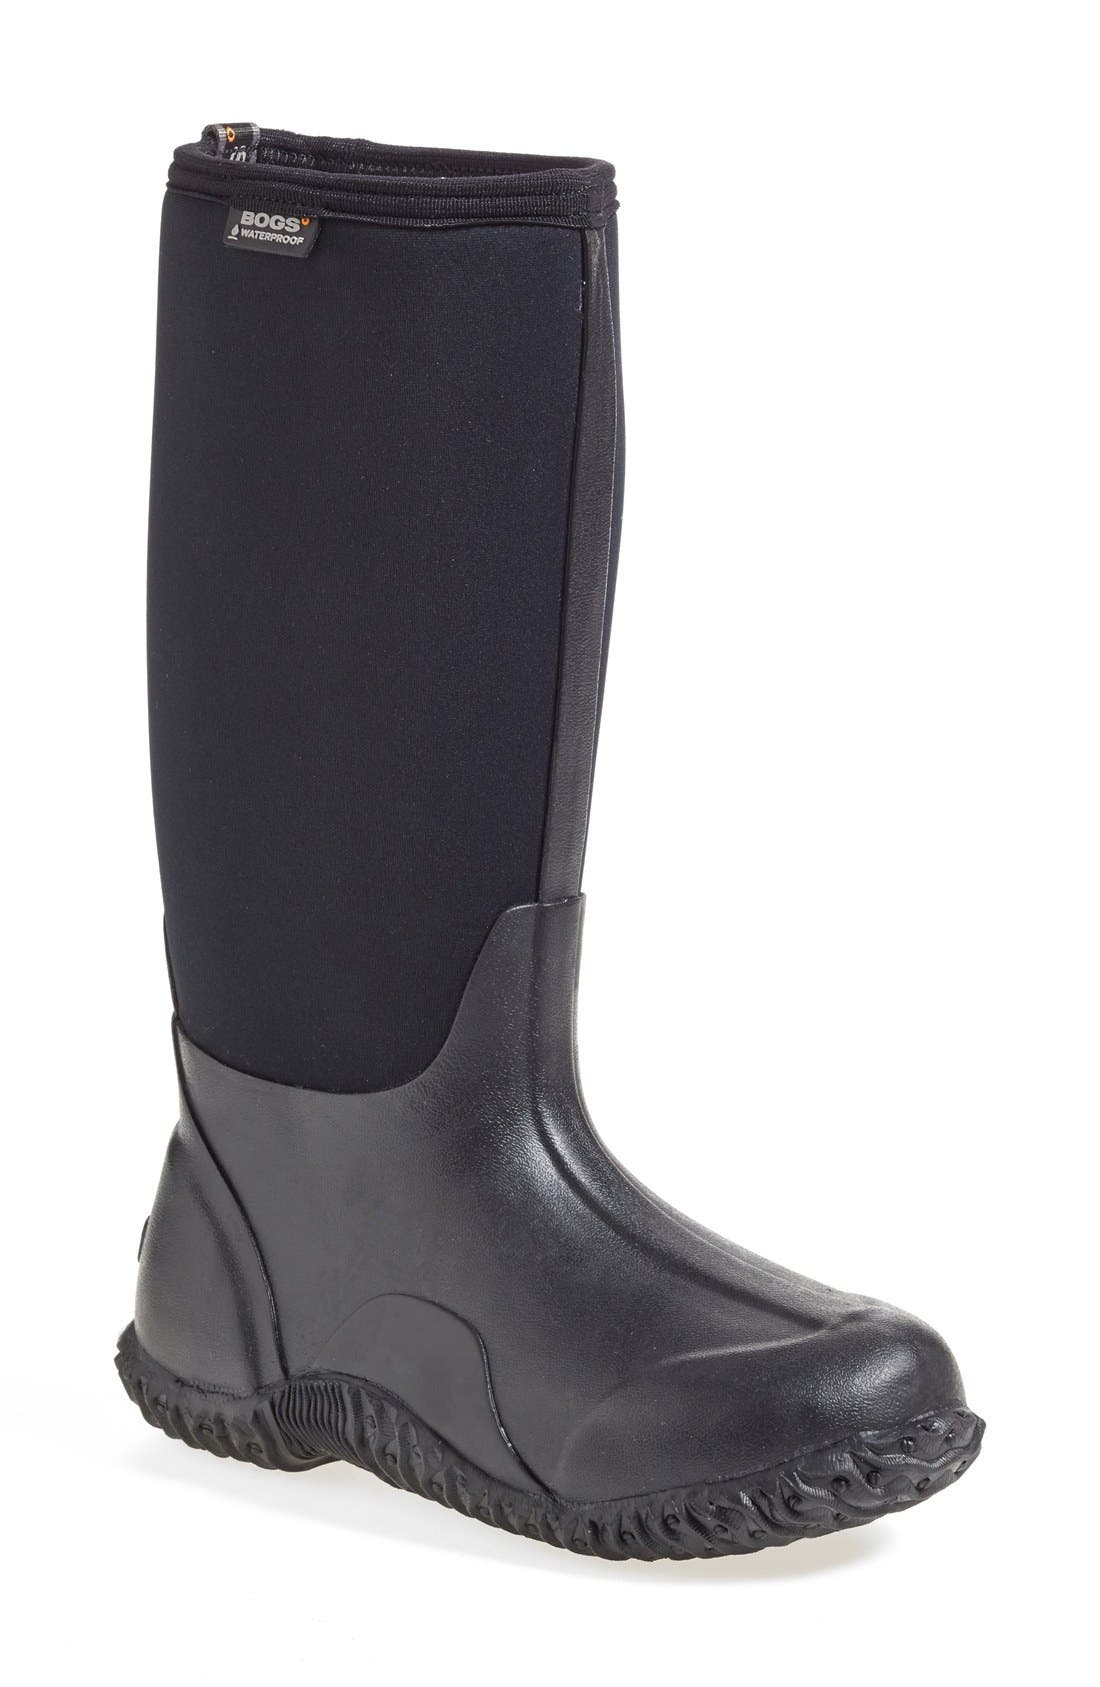 Alternate Image 1 Selected - Bogs 'Classic' High Waterproof Snow Boot (Women)